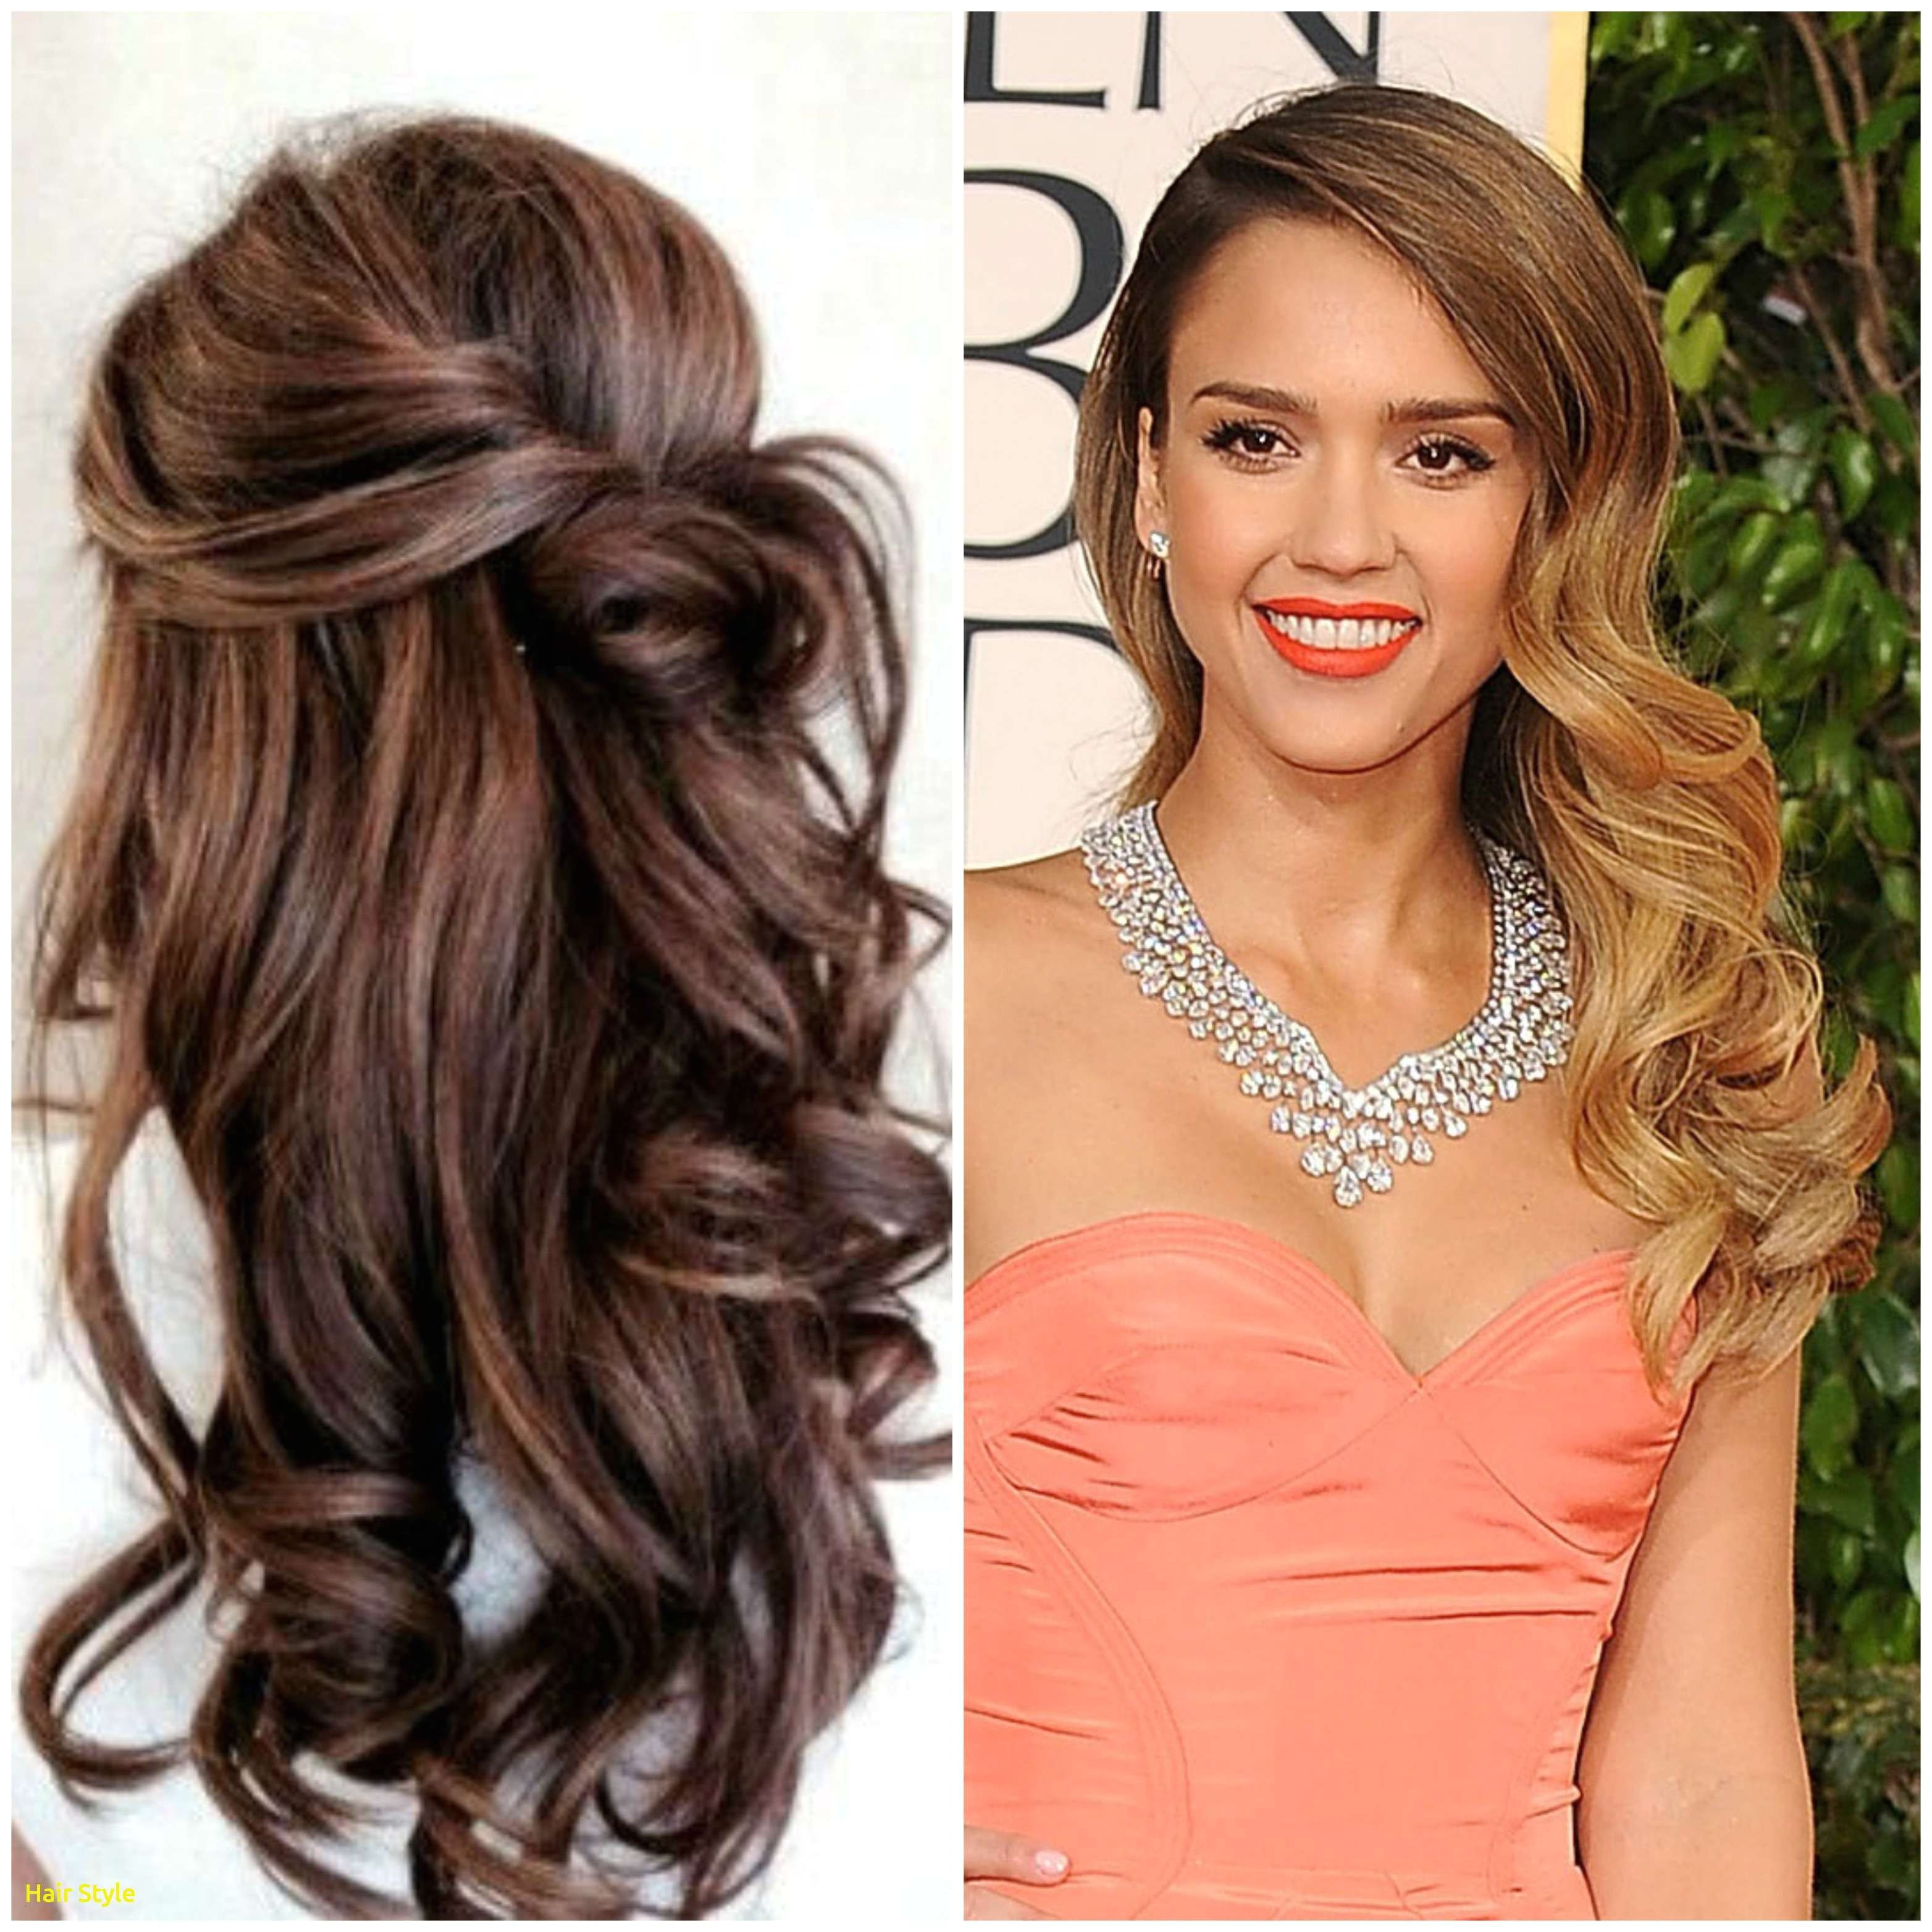 Going Out Hairstyles for Long Hair asian Bridal Hair Styles Awesome Ely Pics Braids Hairstyles Lovely